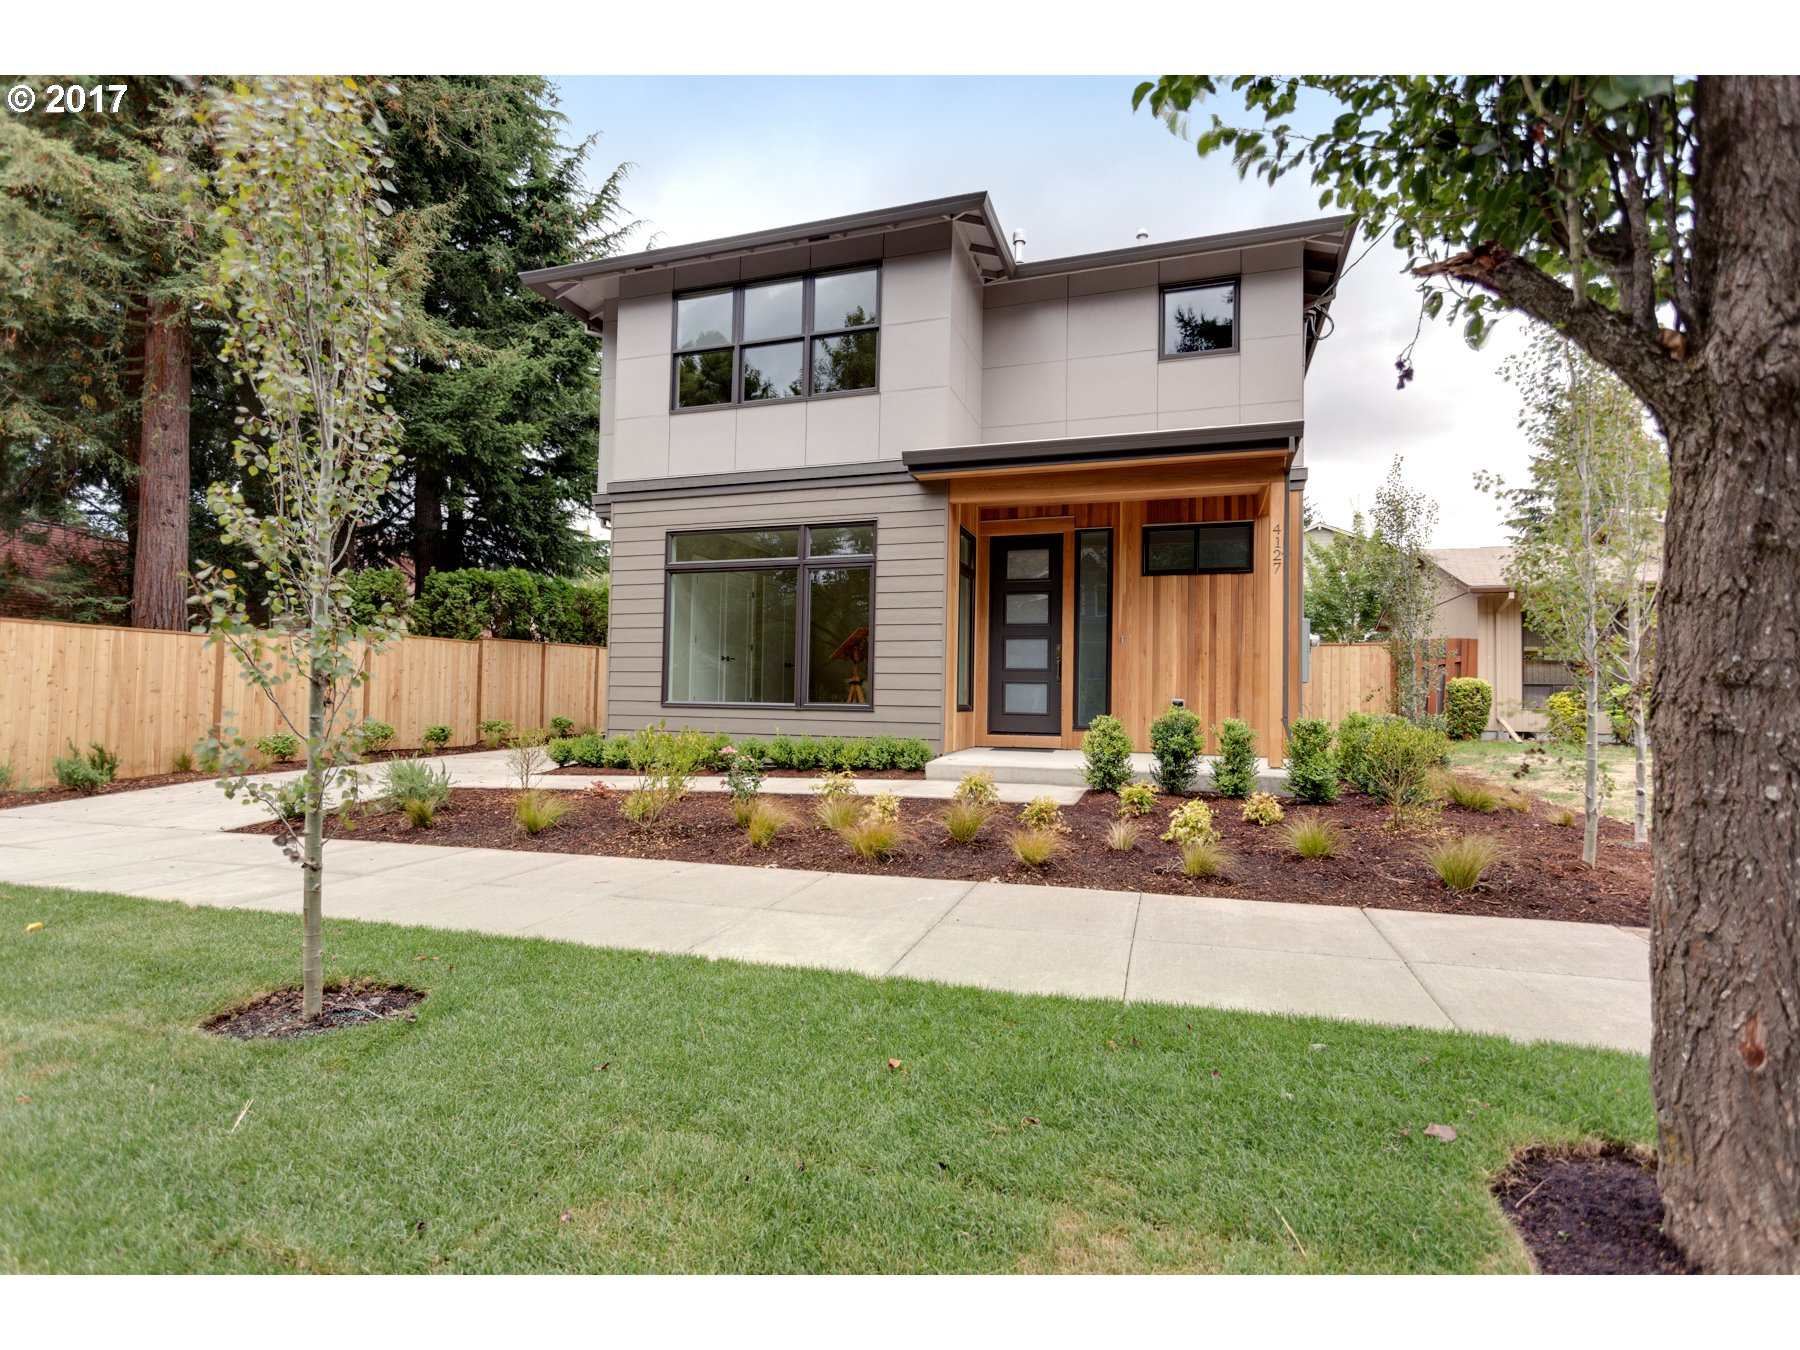 3004 sq. ft 4 bedrooms 3 bathrooms  House For Sale,Portland, OR